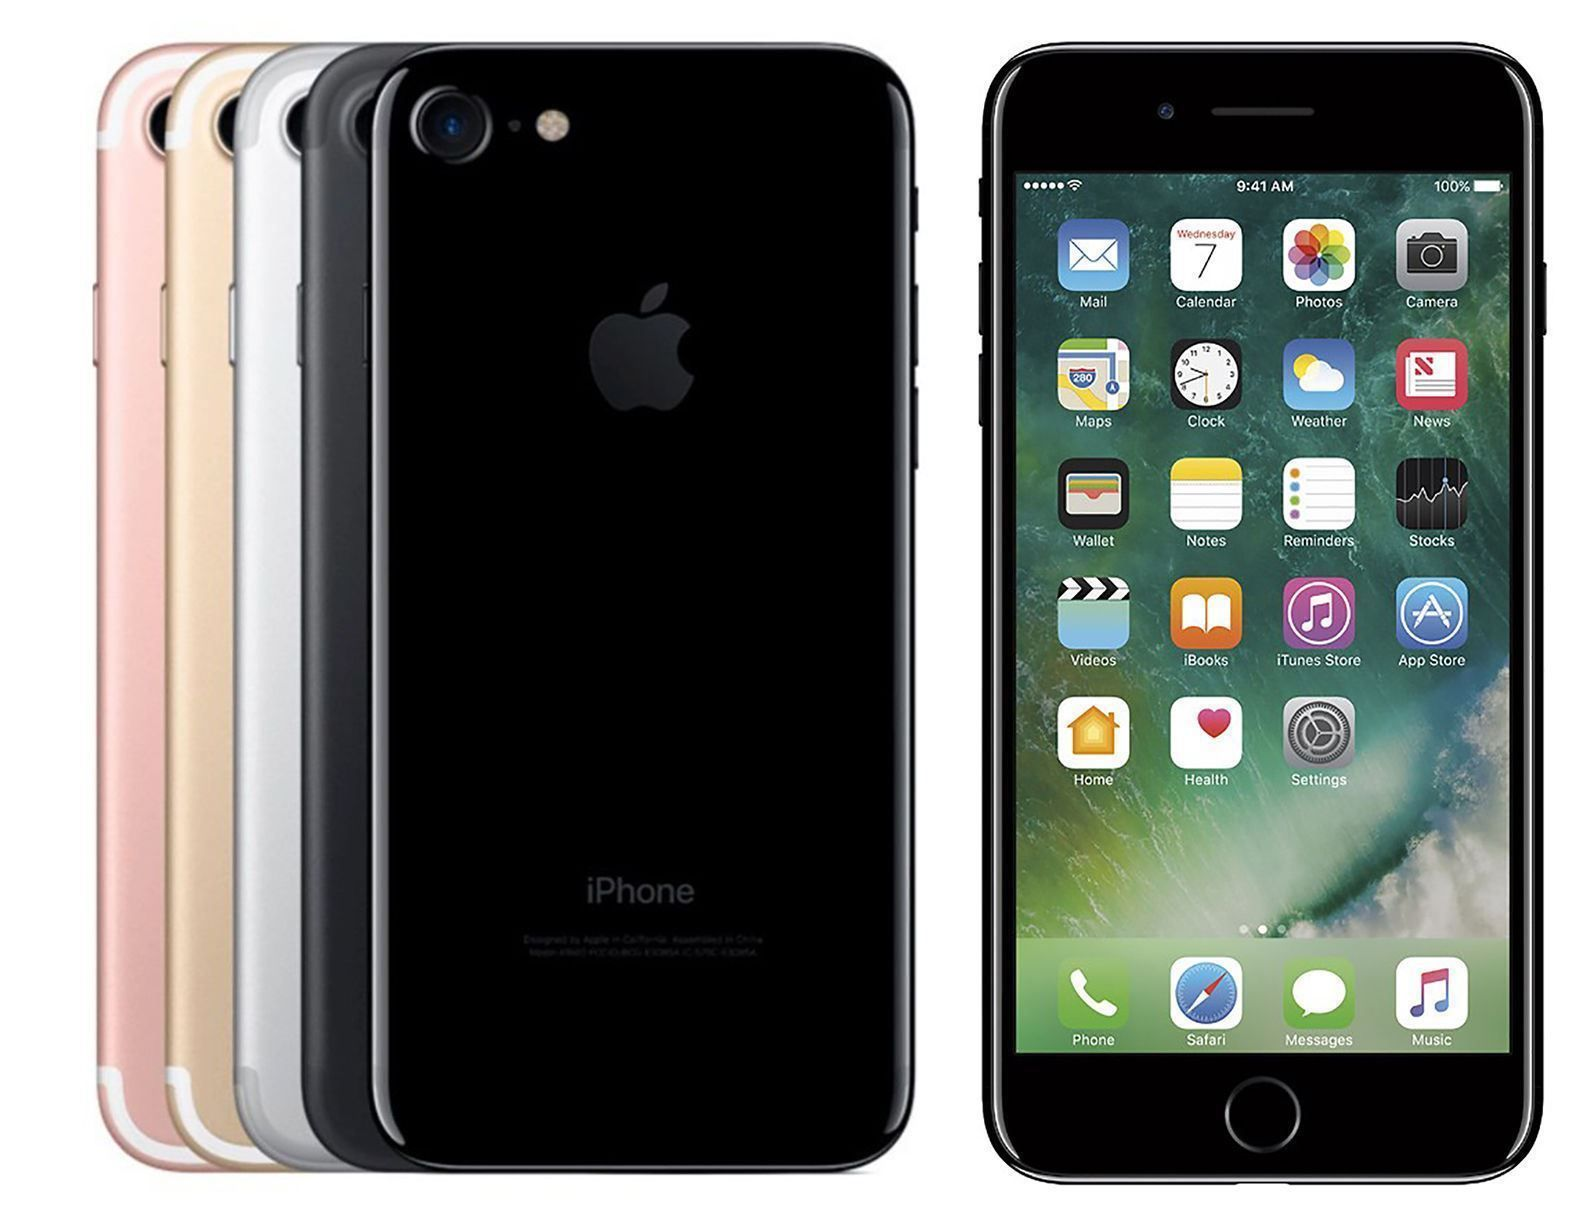 iphone apple ios Apple iPhone 7 32GB 128GB 256GB Factory UNLOCKED Smartphone WARRANTY 465 00 Item specifics Condition Seller refurbished An item